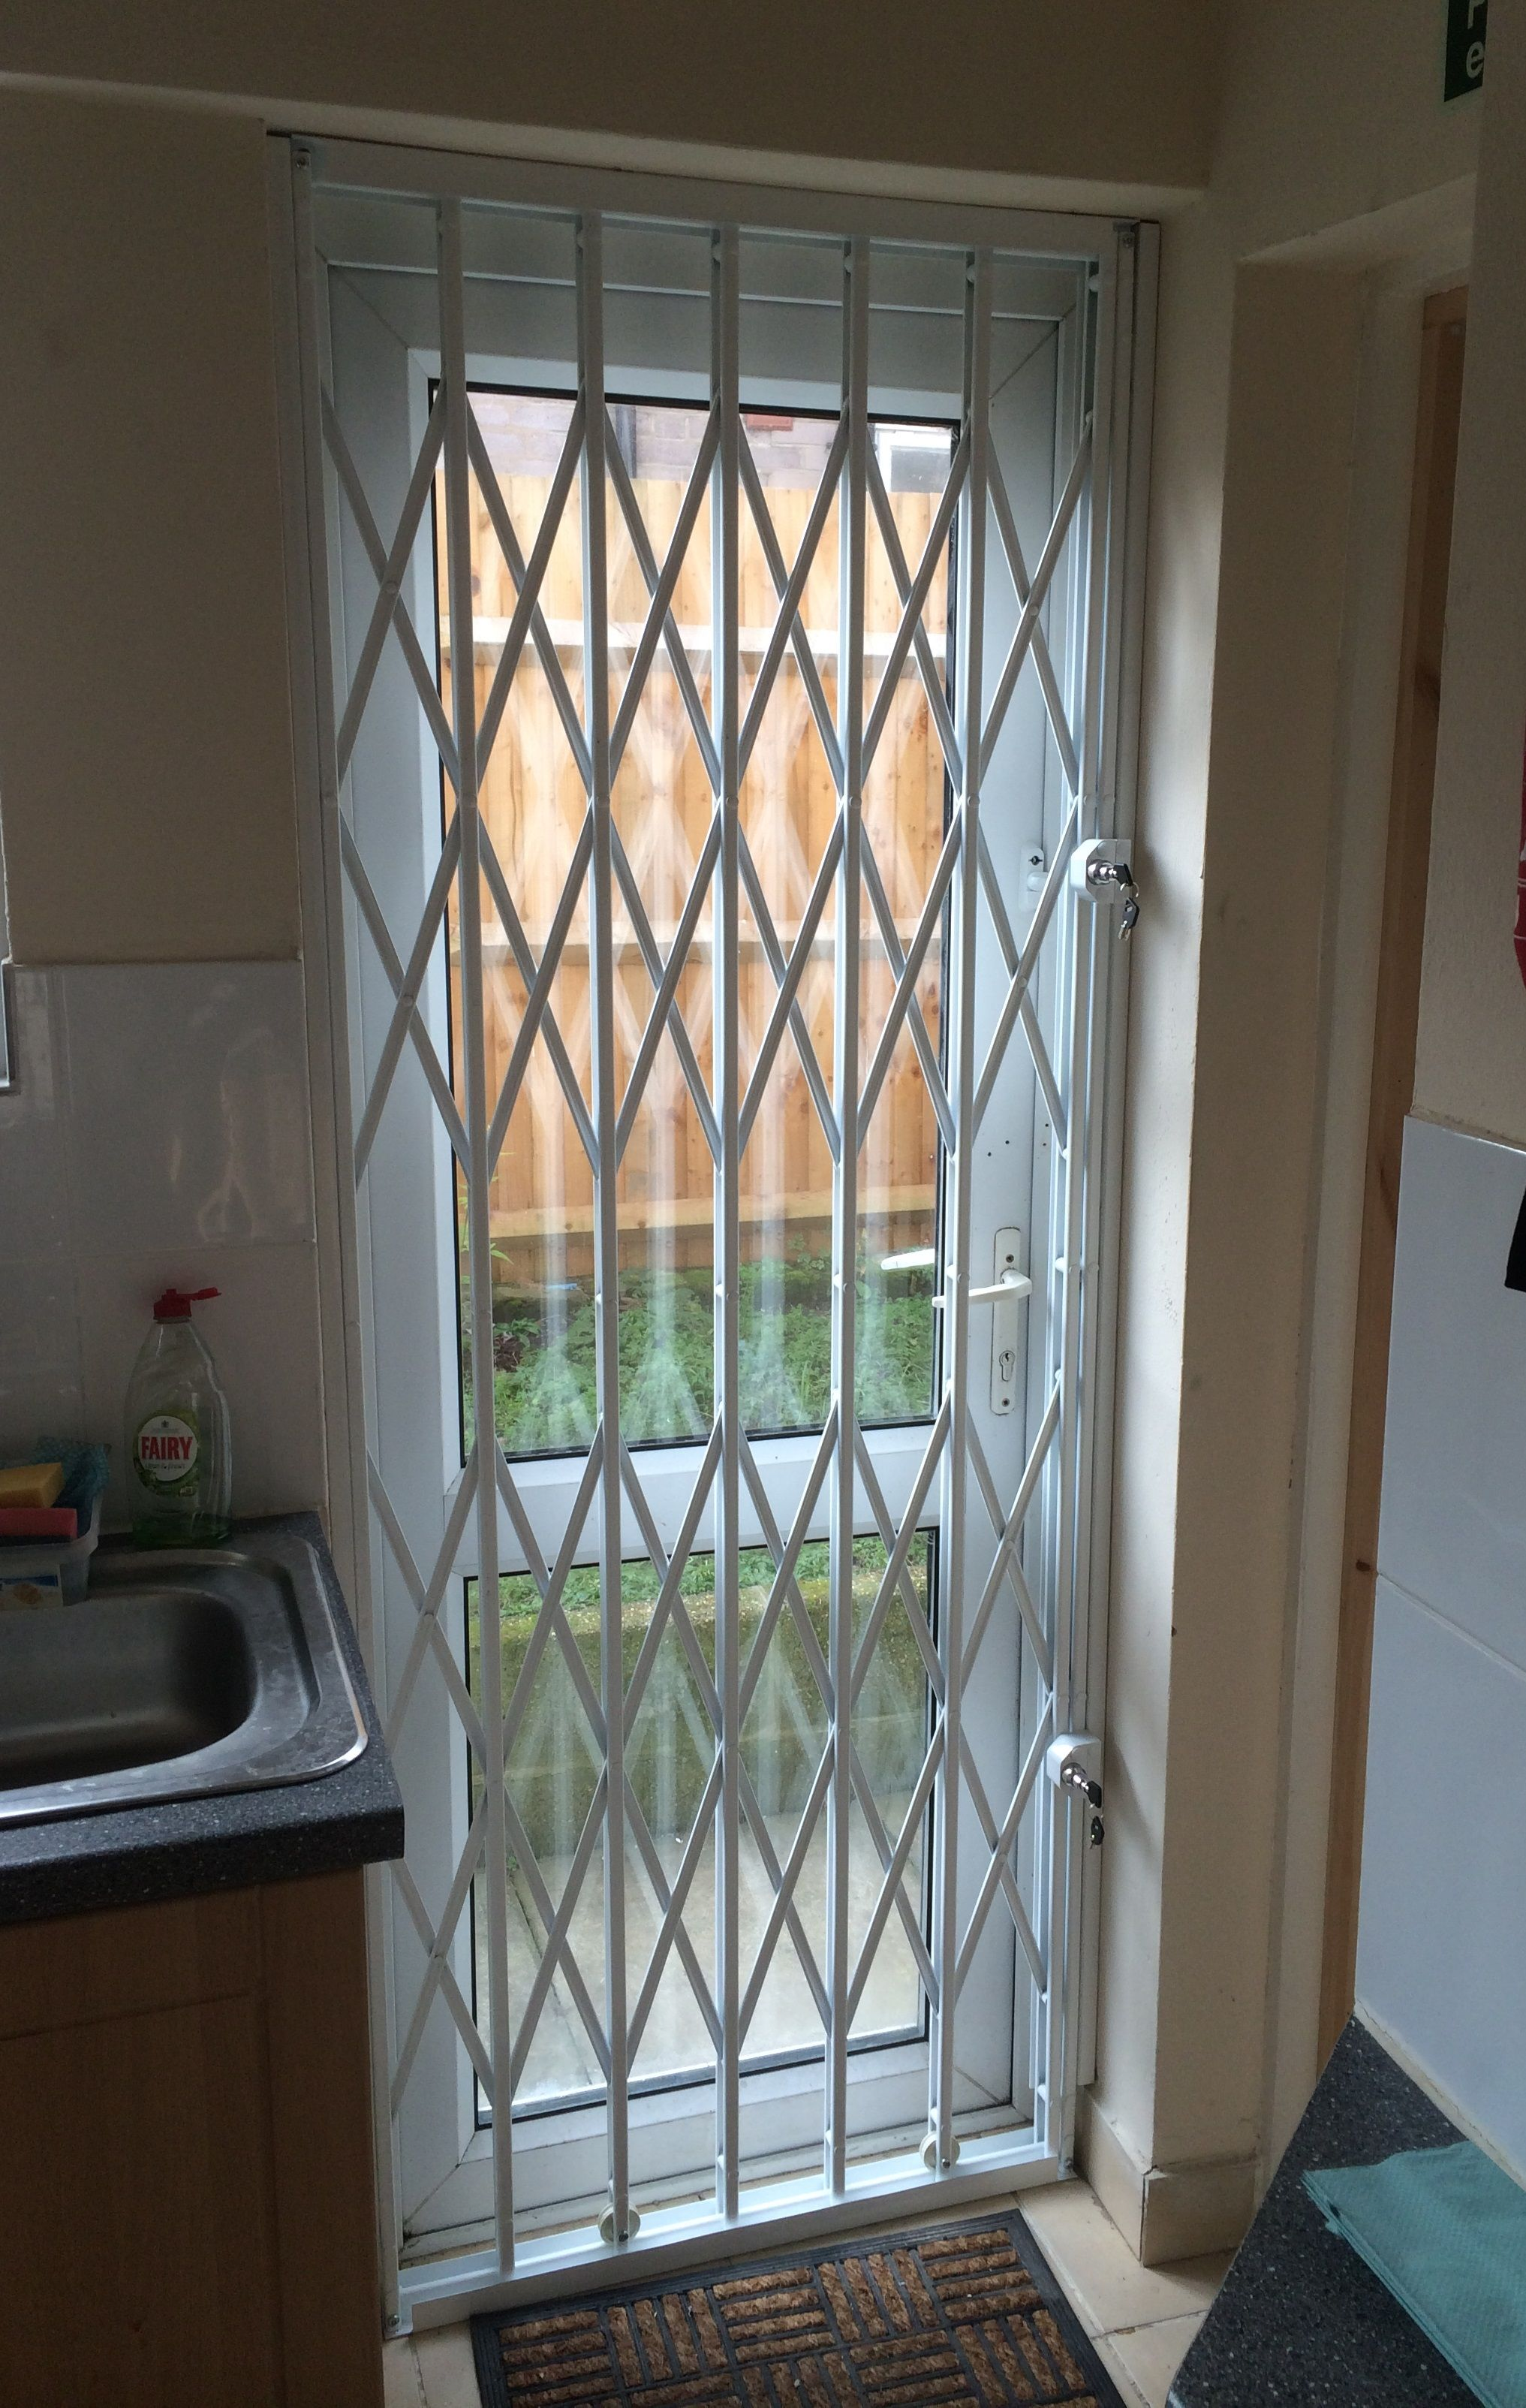 RSG1000 retractable security grille fitted to a kitchen ...